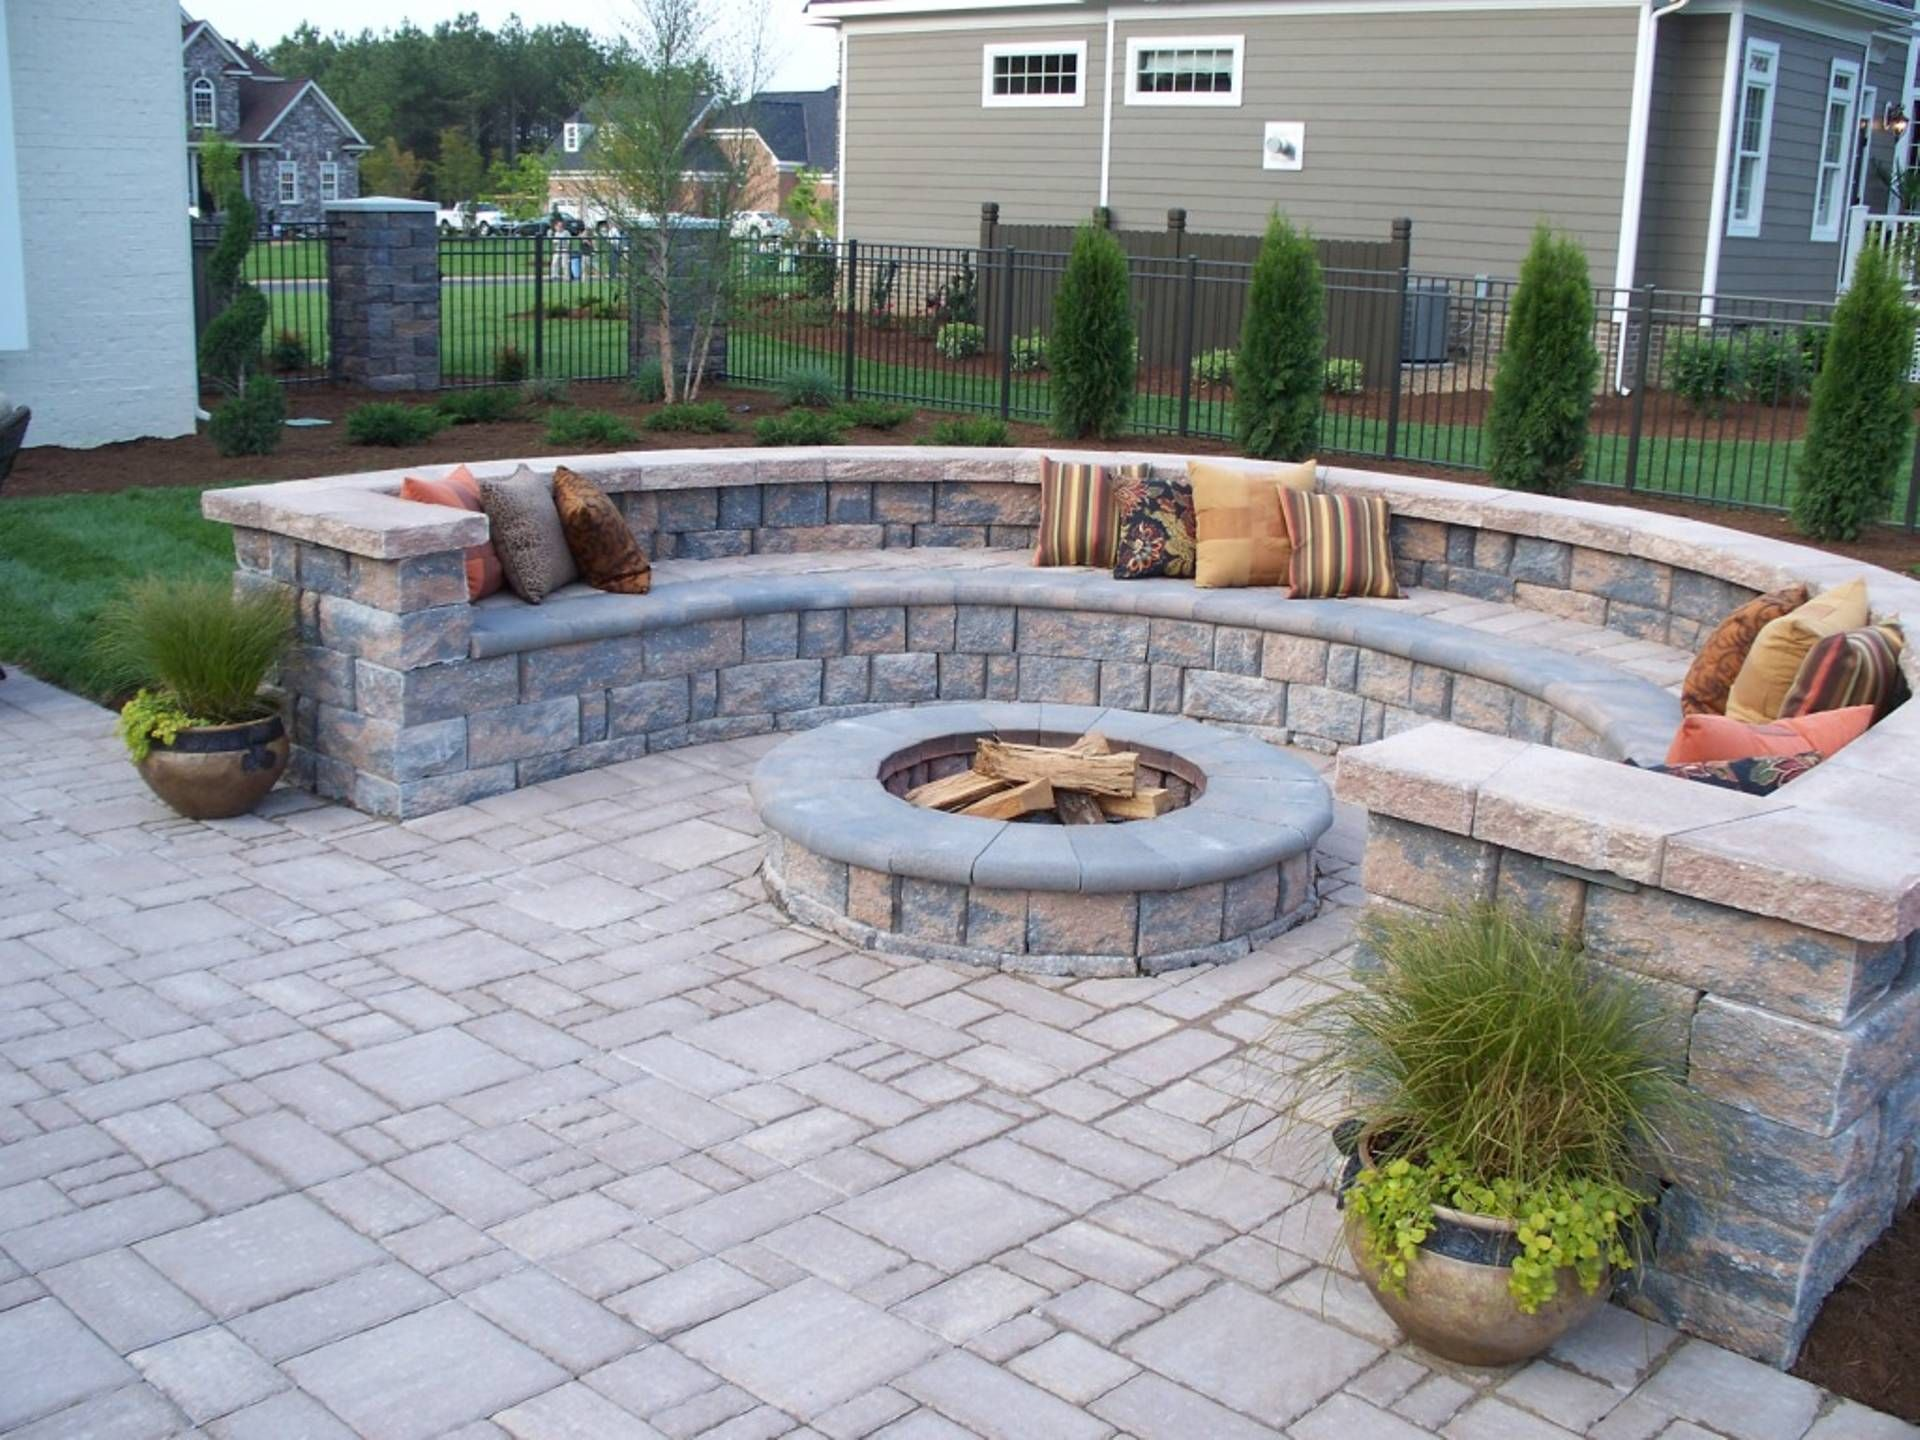 best 25+ pavers patio ideas on pinterest | brick paver patio ... - Pavers Patio Ideas